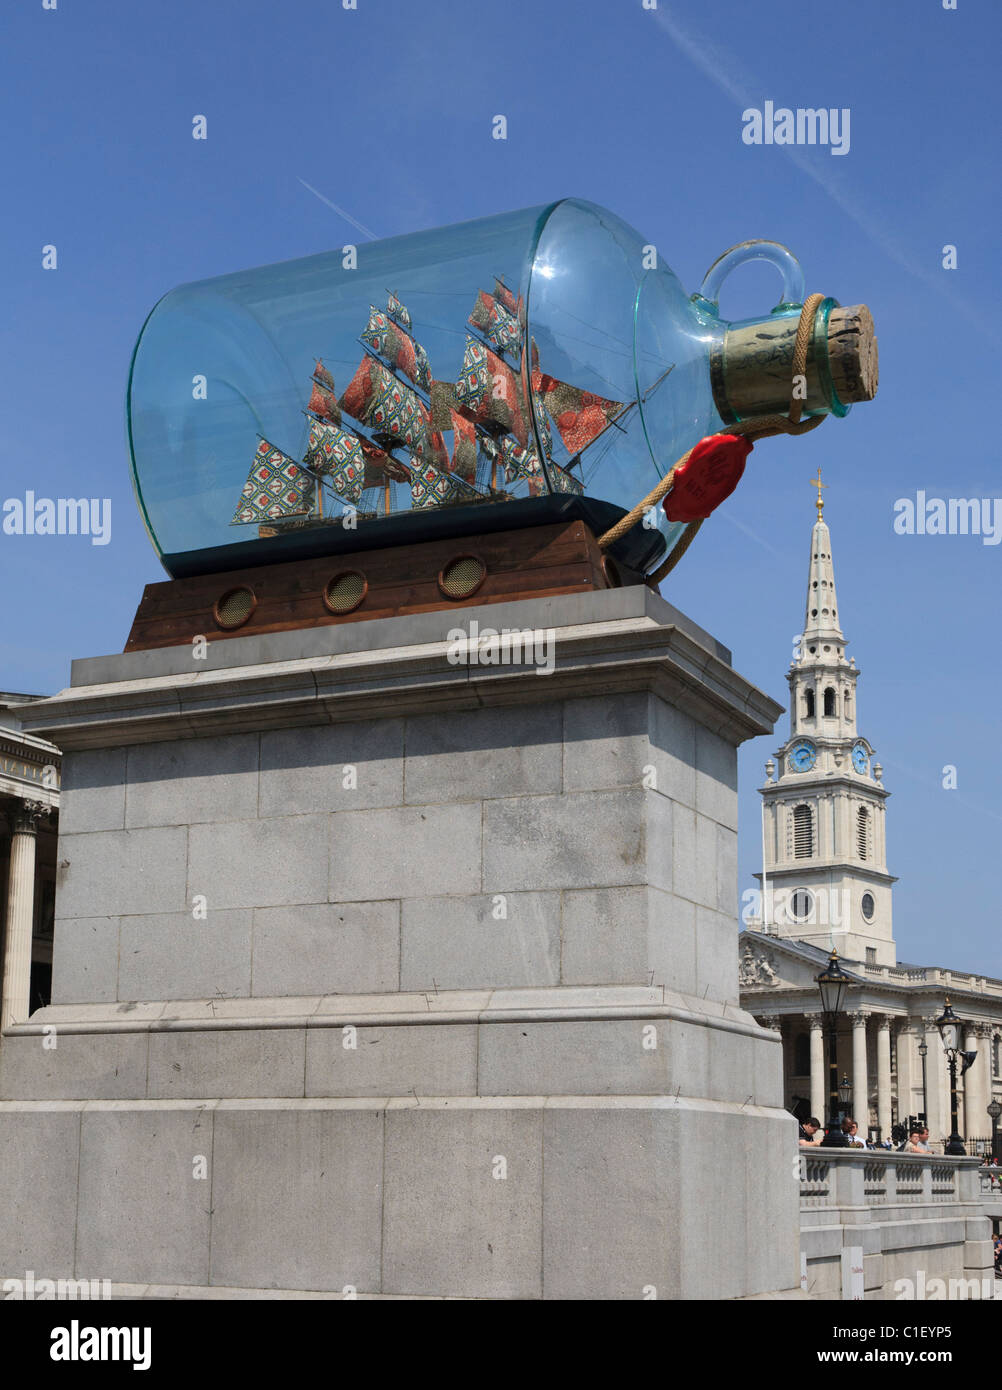 Nelson's Ship in a bottle by Yinka Shonibare on the fourth plinth in